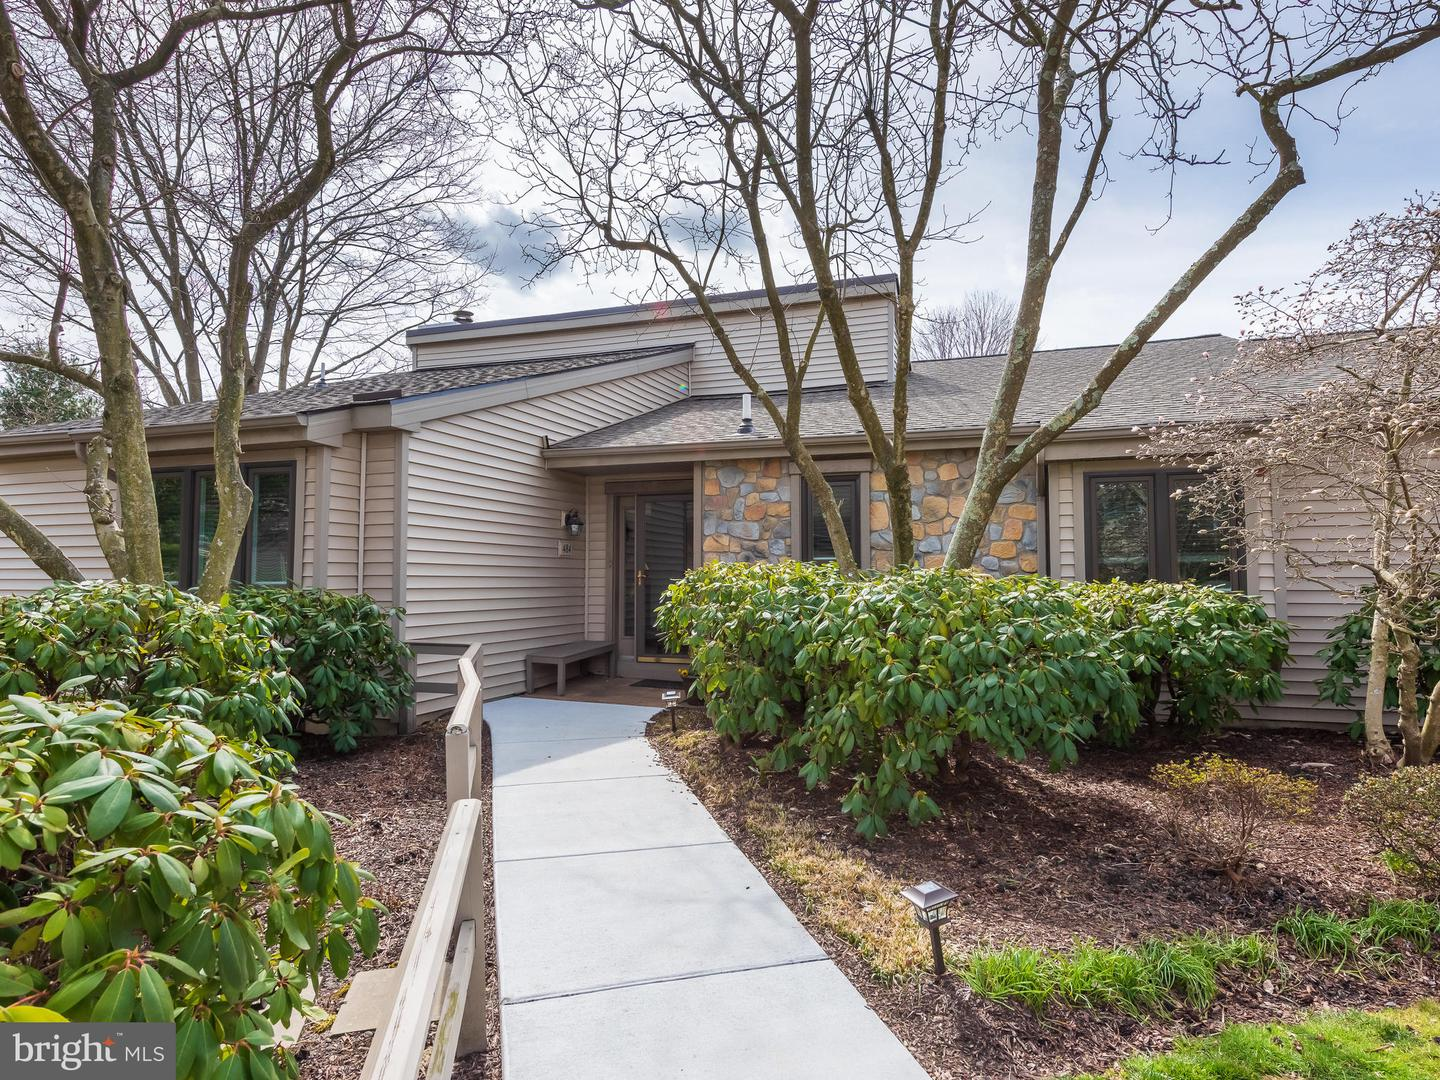 484 Eaton Way West Chester, PA 19380